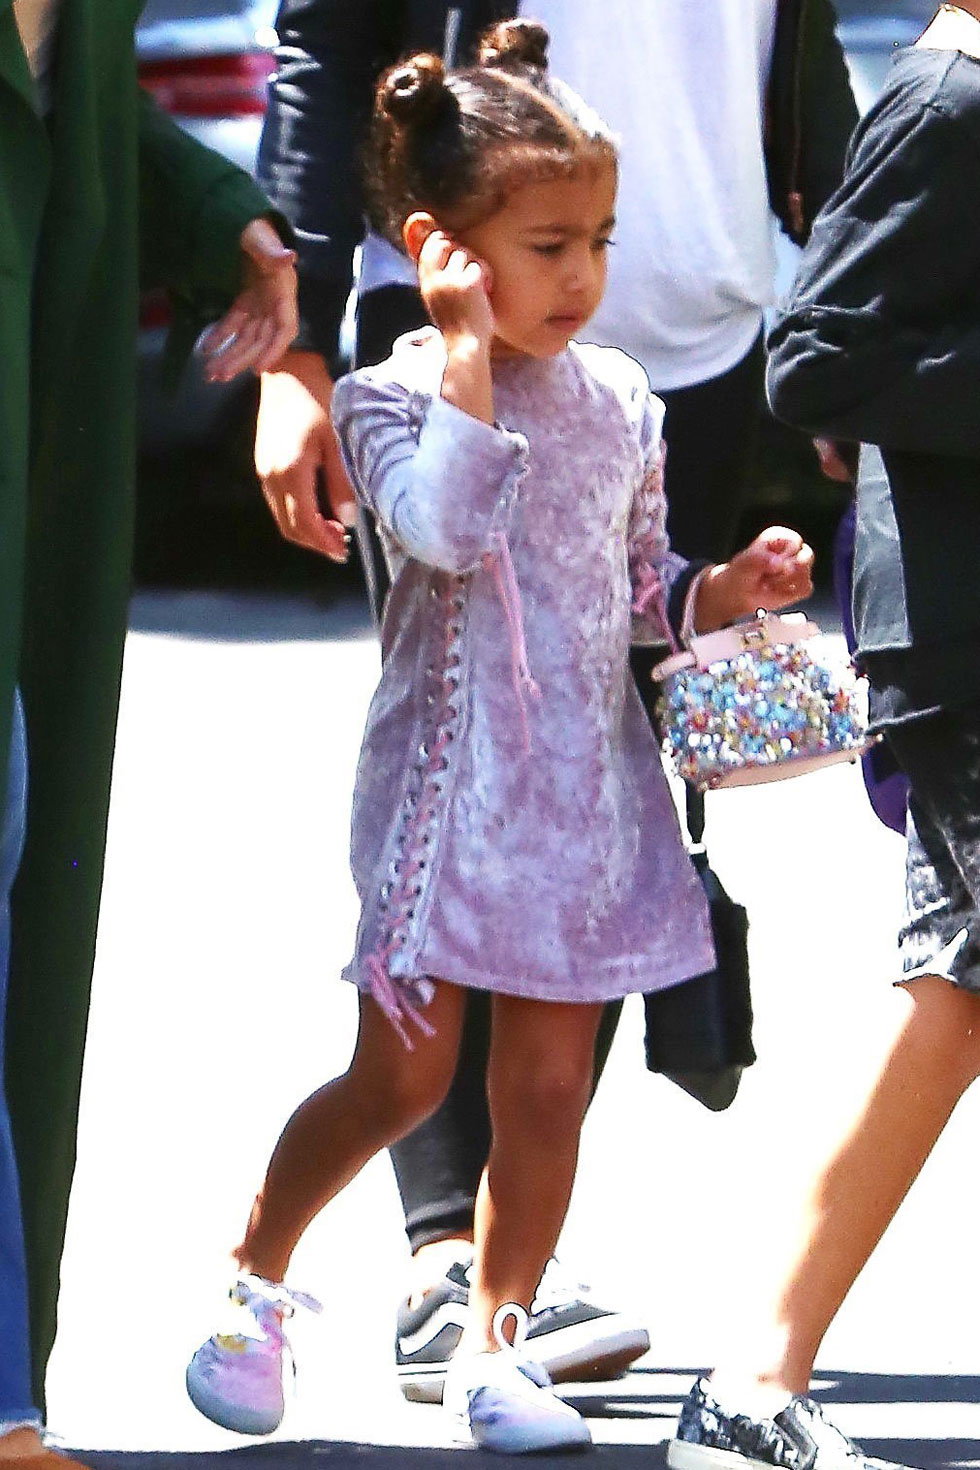 North West Style - North West Fashion Photos